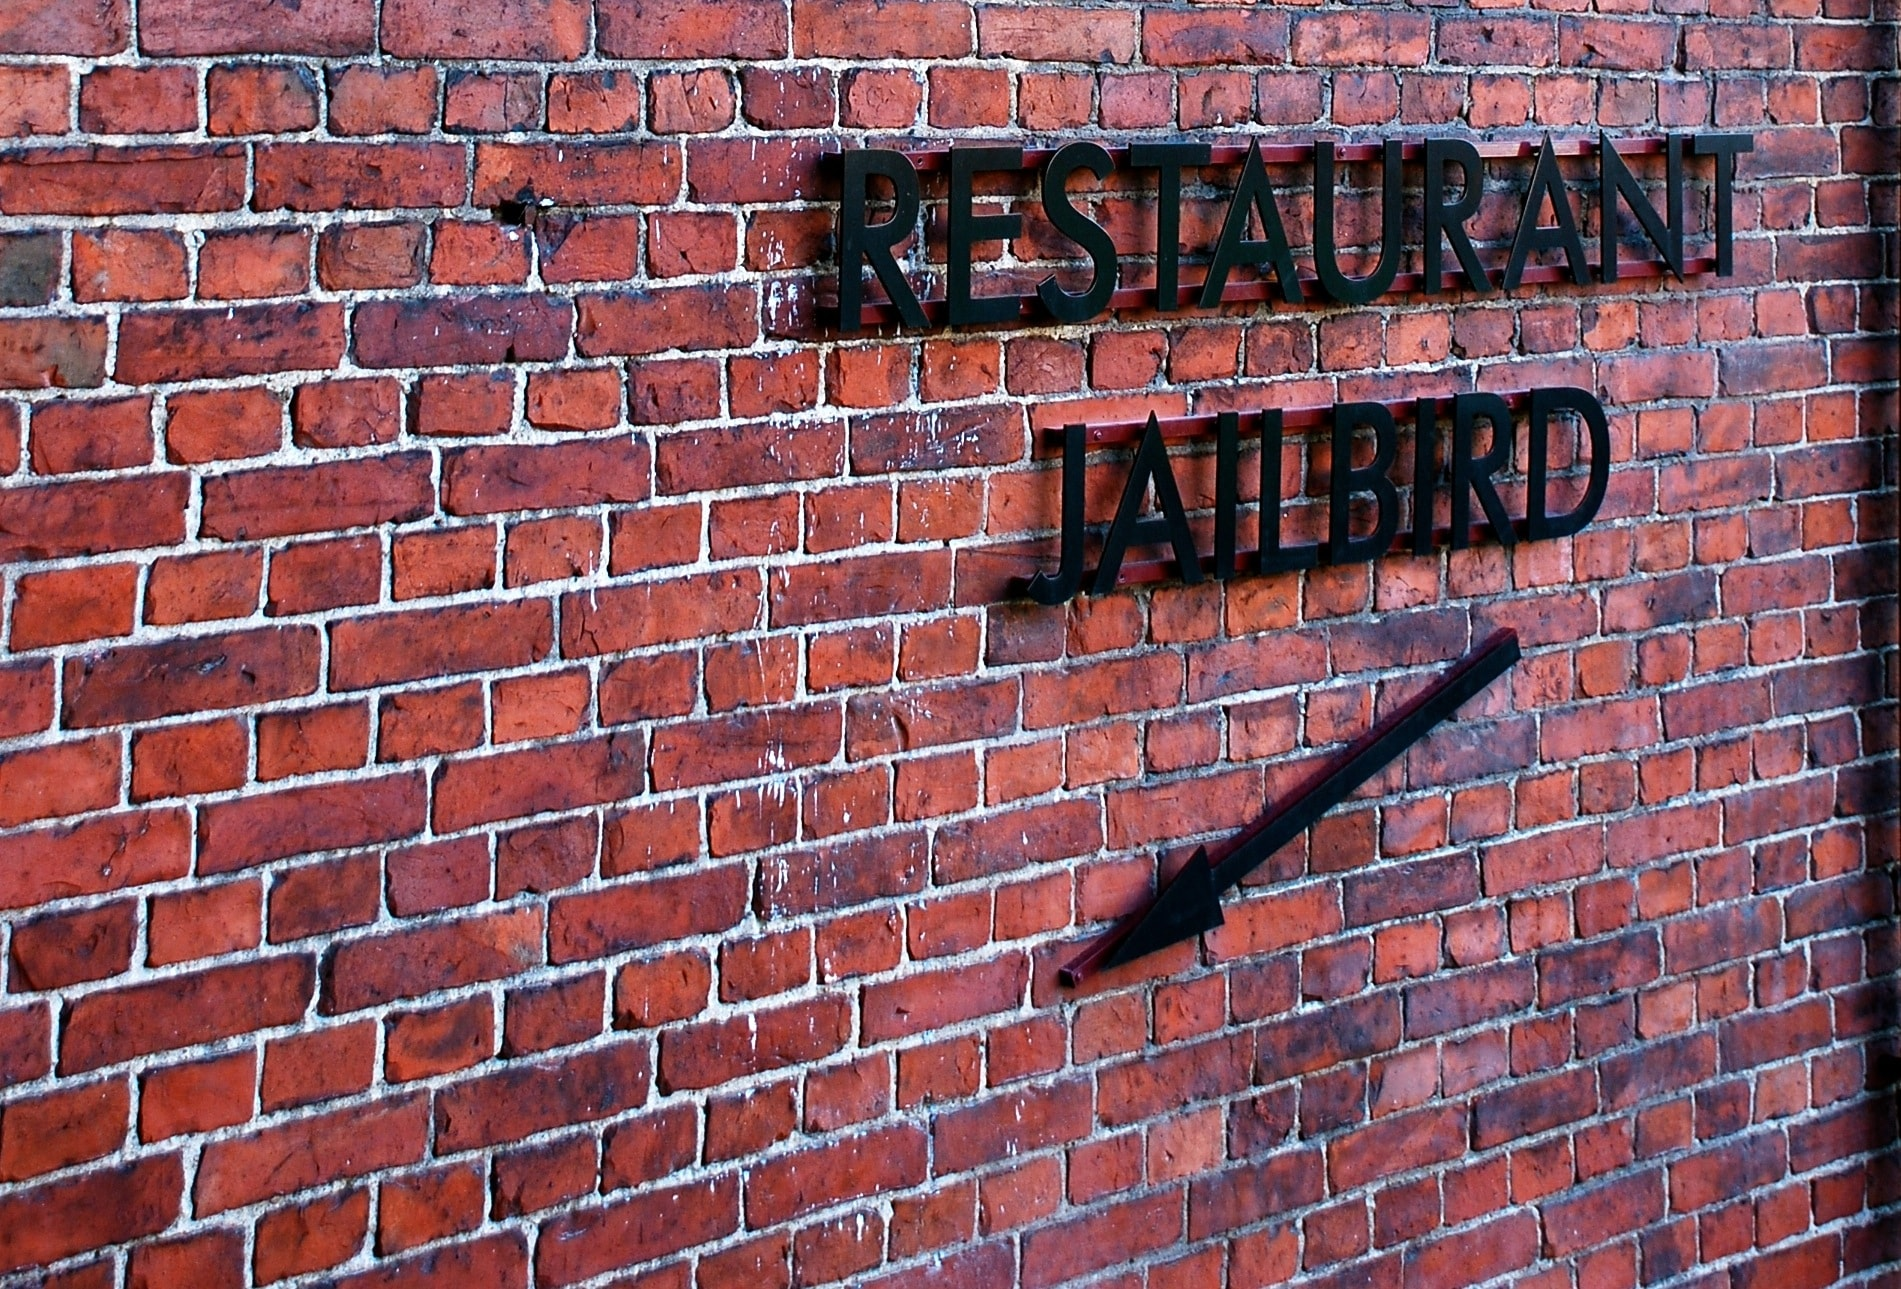 Prison Restaurant (Helsinki, Finland): Hotel Katajanokka. The name is a tongue twister, so just remember a restaurant inside a former prison. No, you do not wear the stripes and there are no handcuffs, but Helsinki's Linnankellari restaurant is housed in the cafeteria of a former detention centre. The windows are small, the furnishing blue and the cuisine Finnish-Scandi. Order a Jail Burger or Prison's Solyanka (fish, shrimps & sour cream). Peep into their unusual asparagus menu and 7 Flavours from the prison starters for Group Menu.